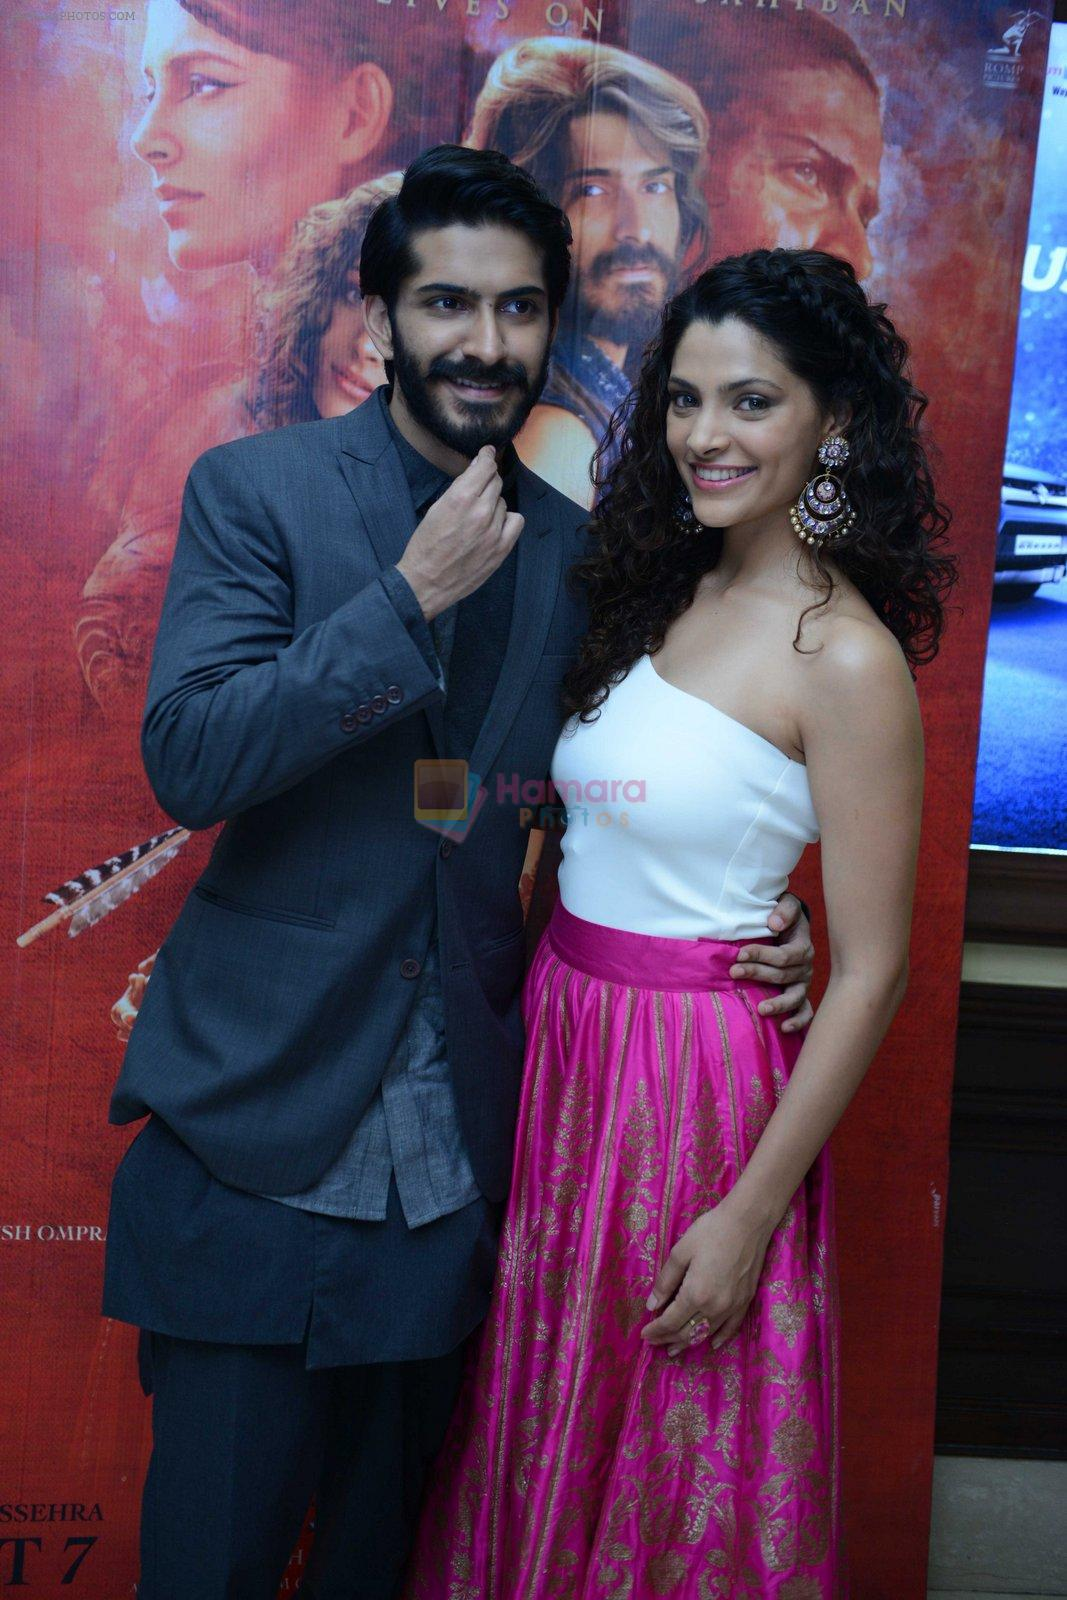 Harshvardhan Kapoor, Saiyami Kher at Mirzya press conference in delhi on n26th Sept 2016